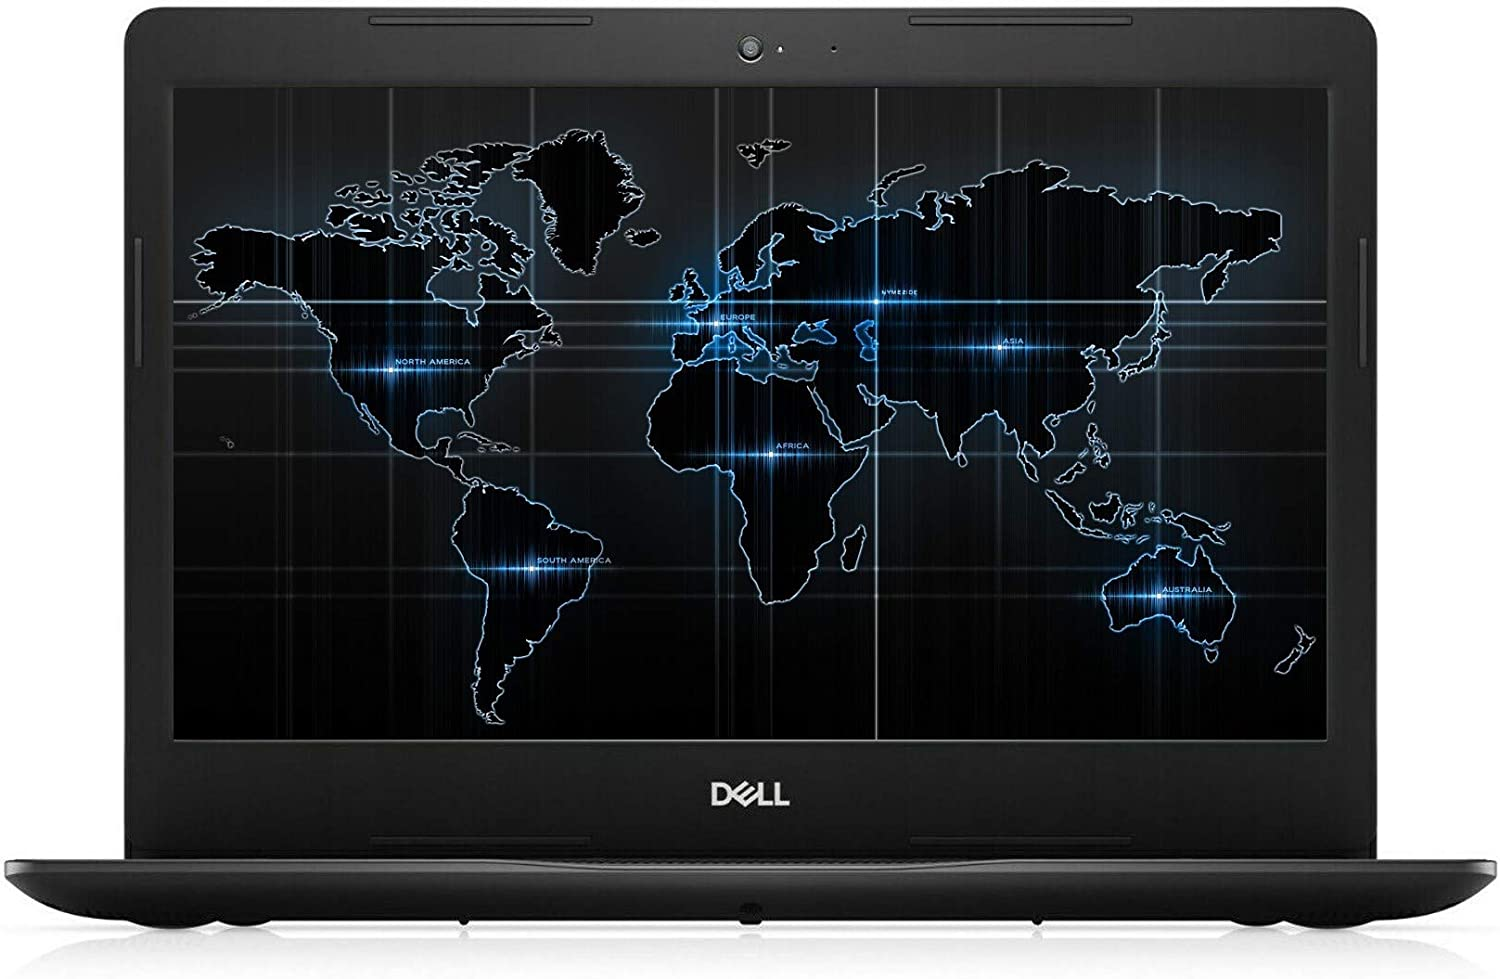 "2020 Newest Dell Inspiron 3480 Business Laptop, 14"" HD Screen, Intel Pentium Silver N5000 Quad-Core Processor, 8GB DDR4 RAM, 256GB SSD, Wi-Fi, Webcam, Online Class, Zoom Meeting, Windows 10 Pro, Black"